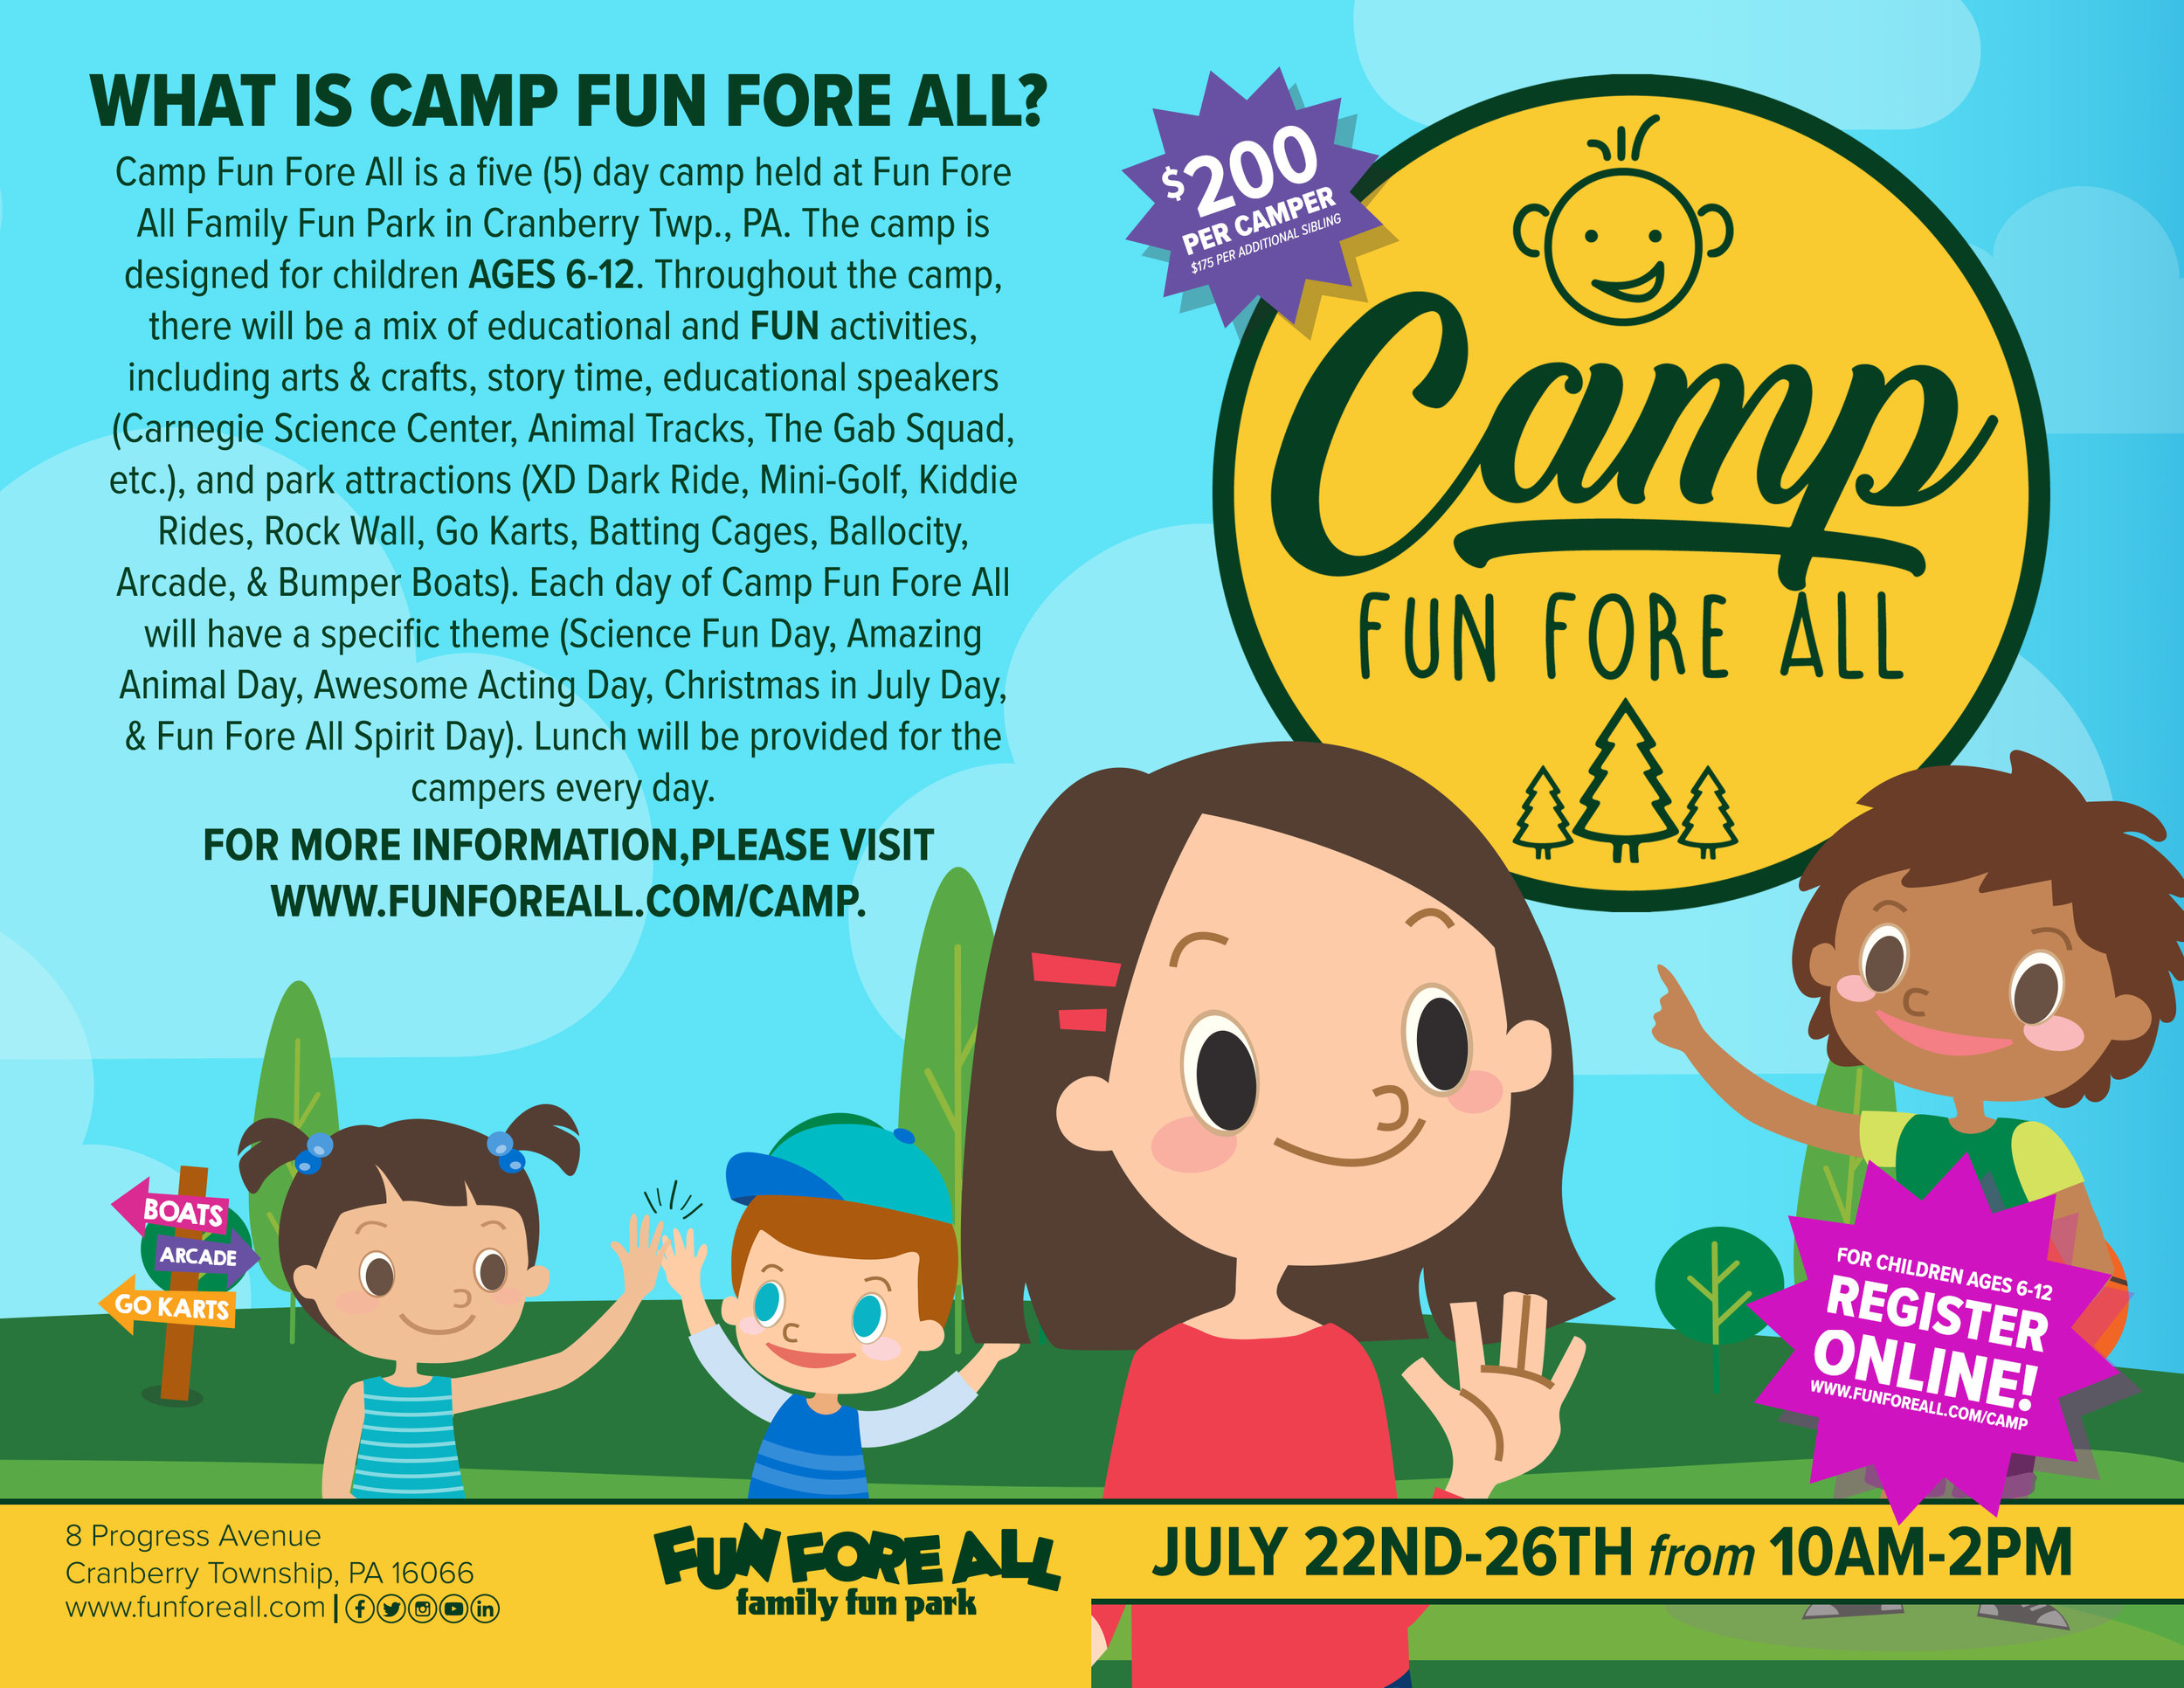 CAMP FUN FORE ALL FLYER (FRONT) 2019